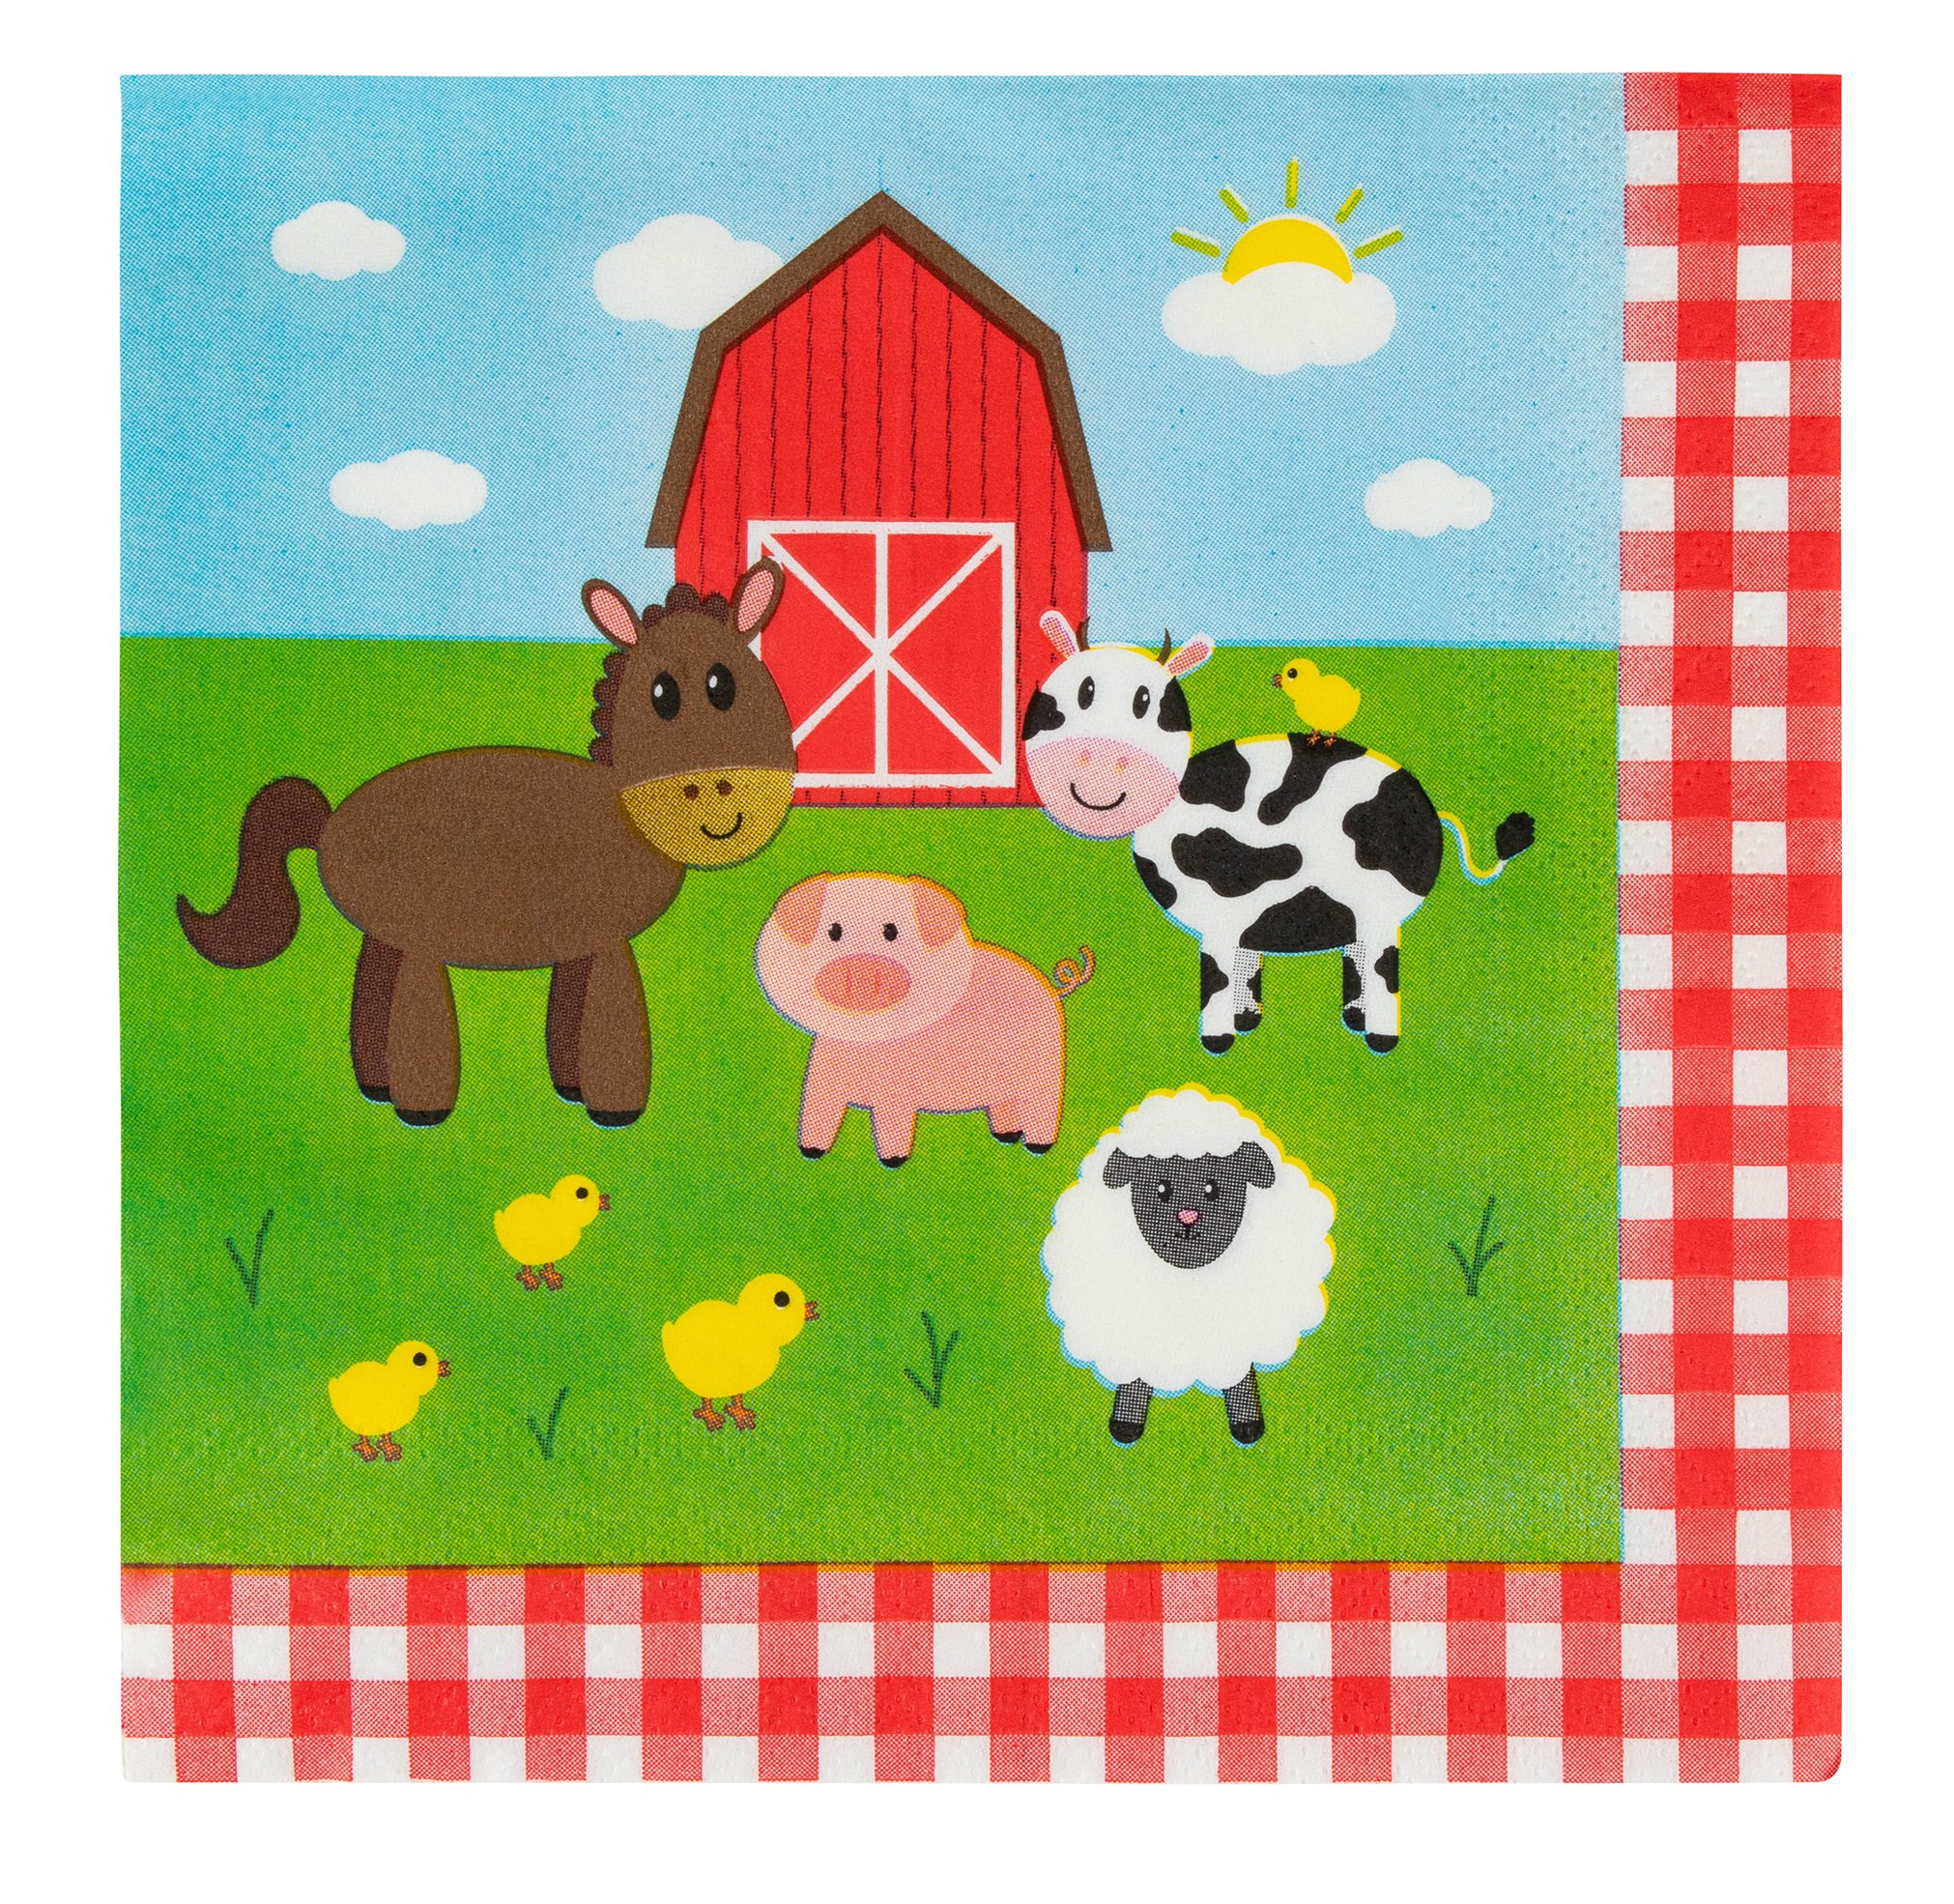 Cocktail Napkins - 150-Pack Luncheon Napkins, Disposable Paper Napkins Farm Animals Party Supplies for Kids Birthdays, 2-Ply, Unfolded 13 x 13 inches, Folded 6.5 x 6.5 inches